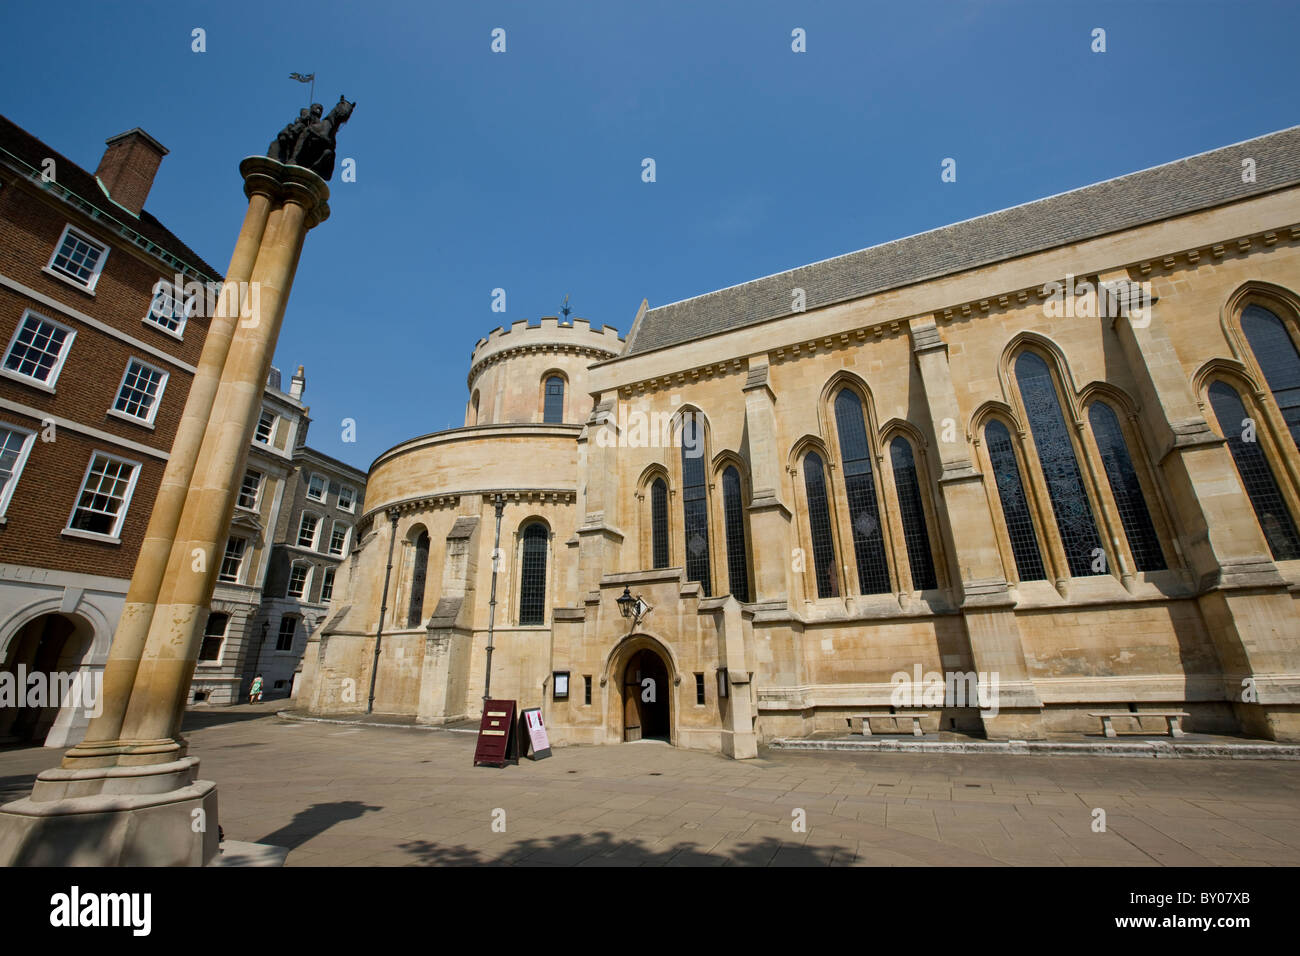 Temple Church in the Inns of Court - Stock Image